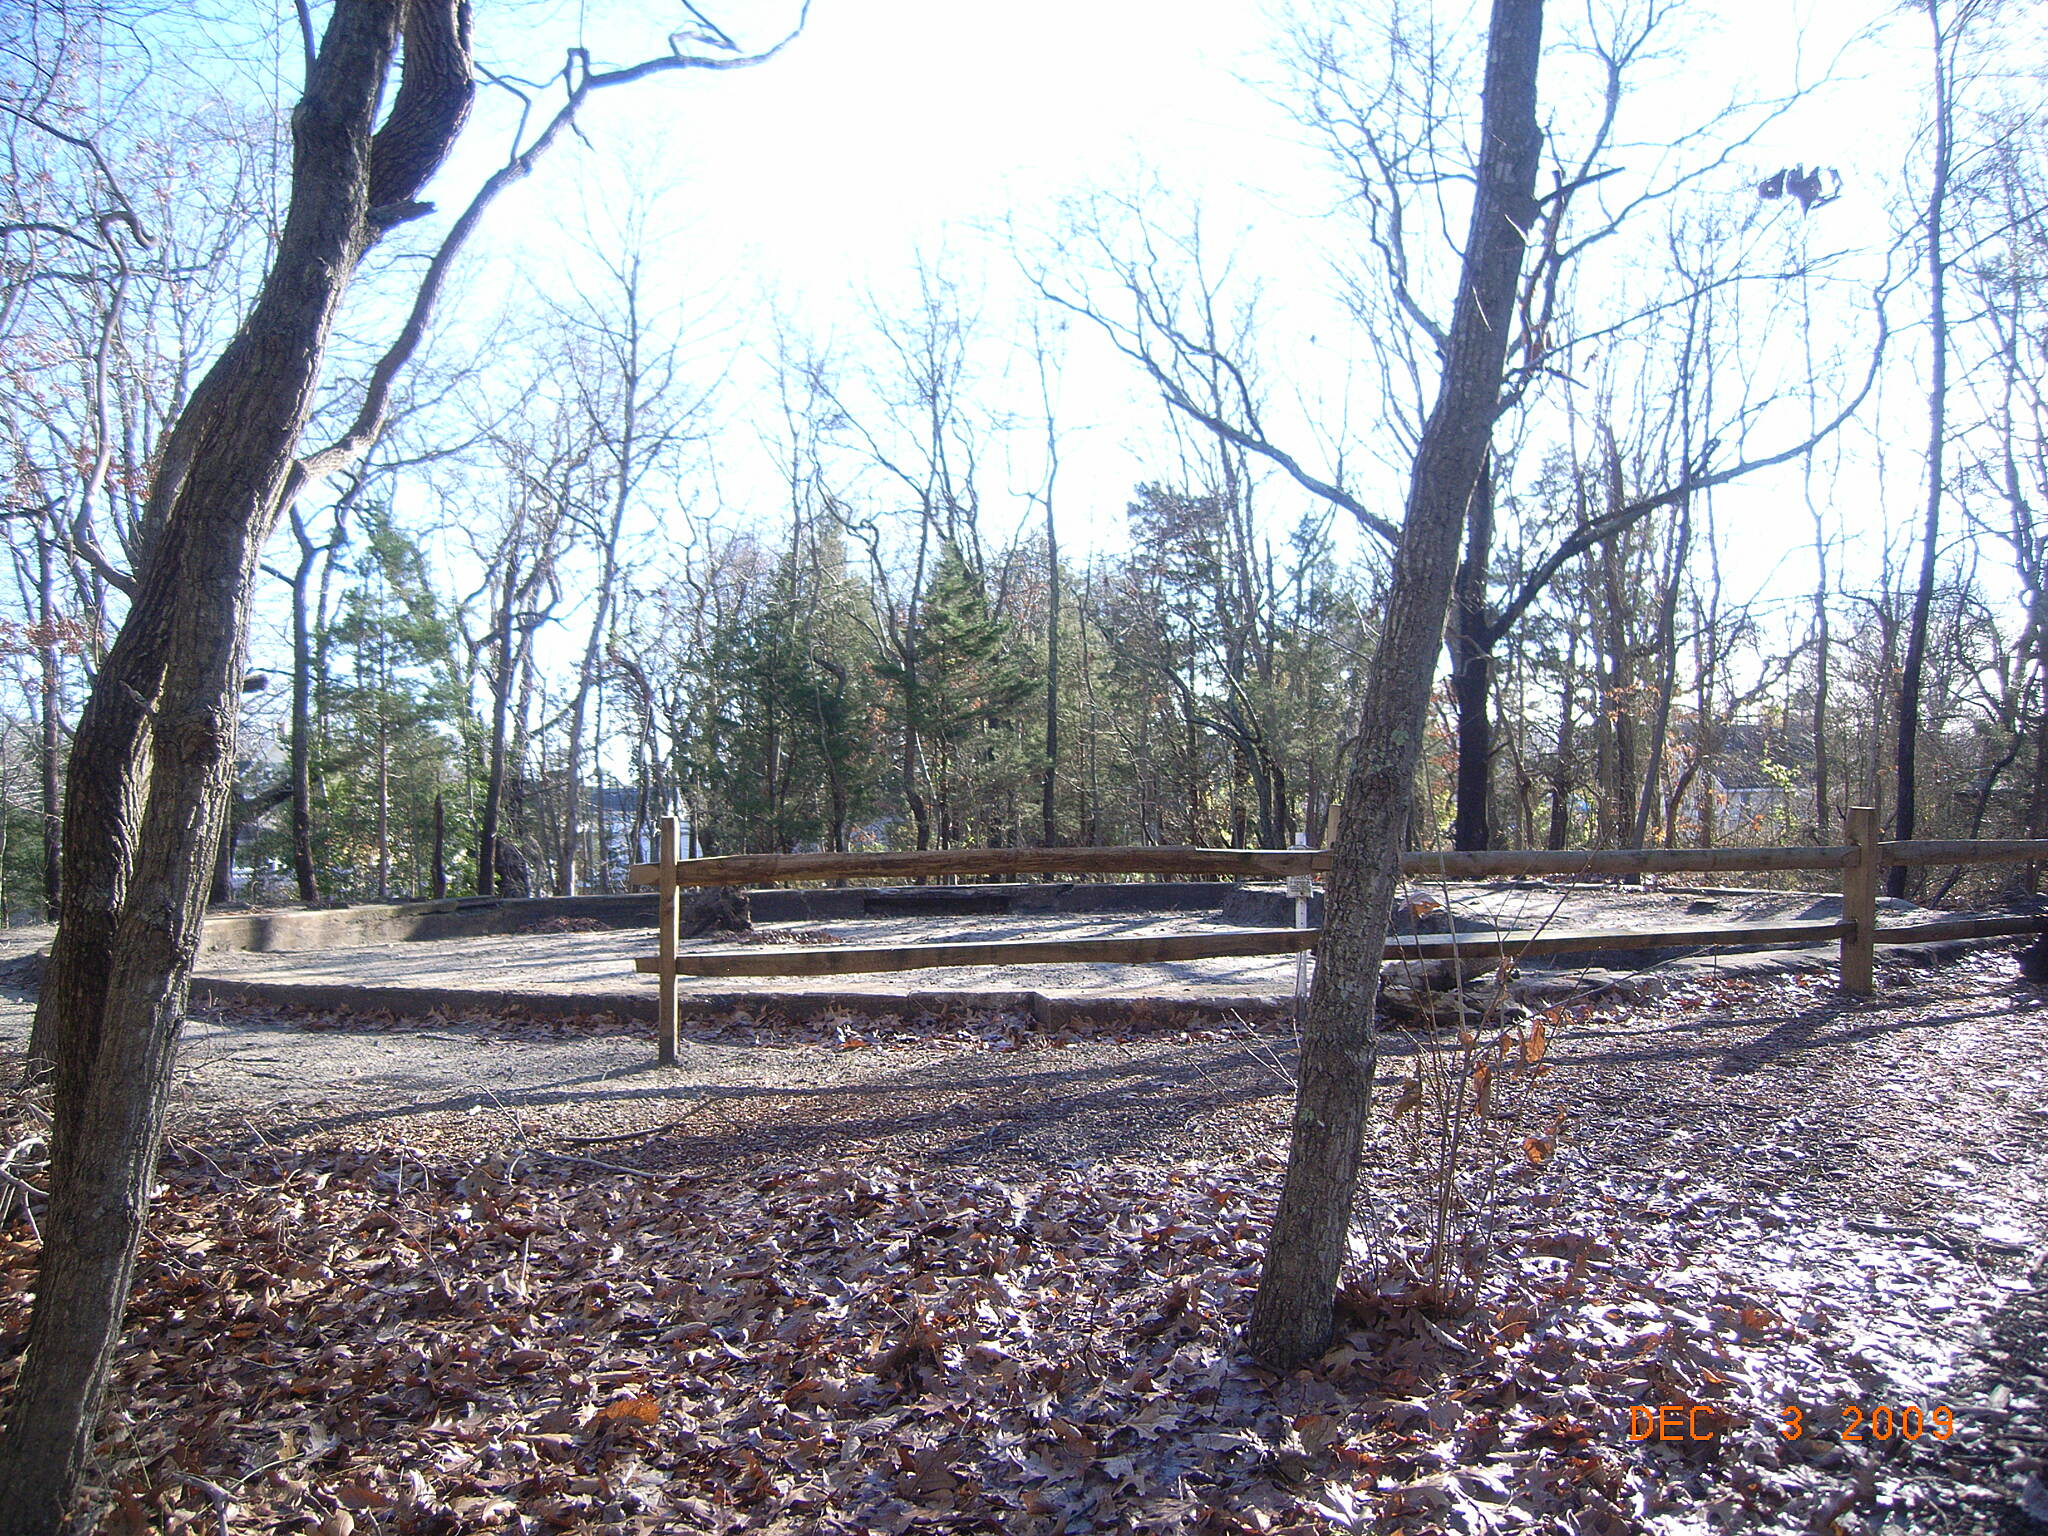 Barnegat Branch Trail Turntable Historic turntable uncovered